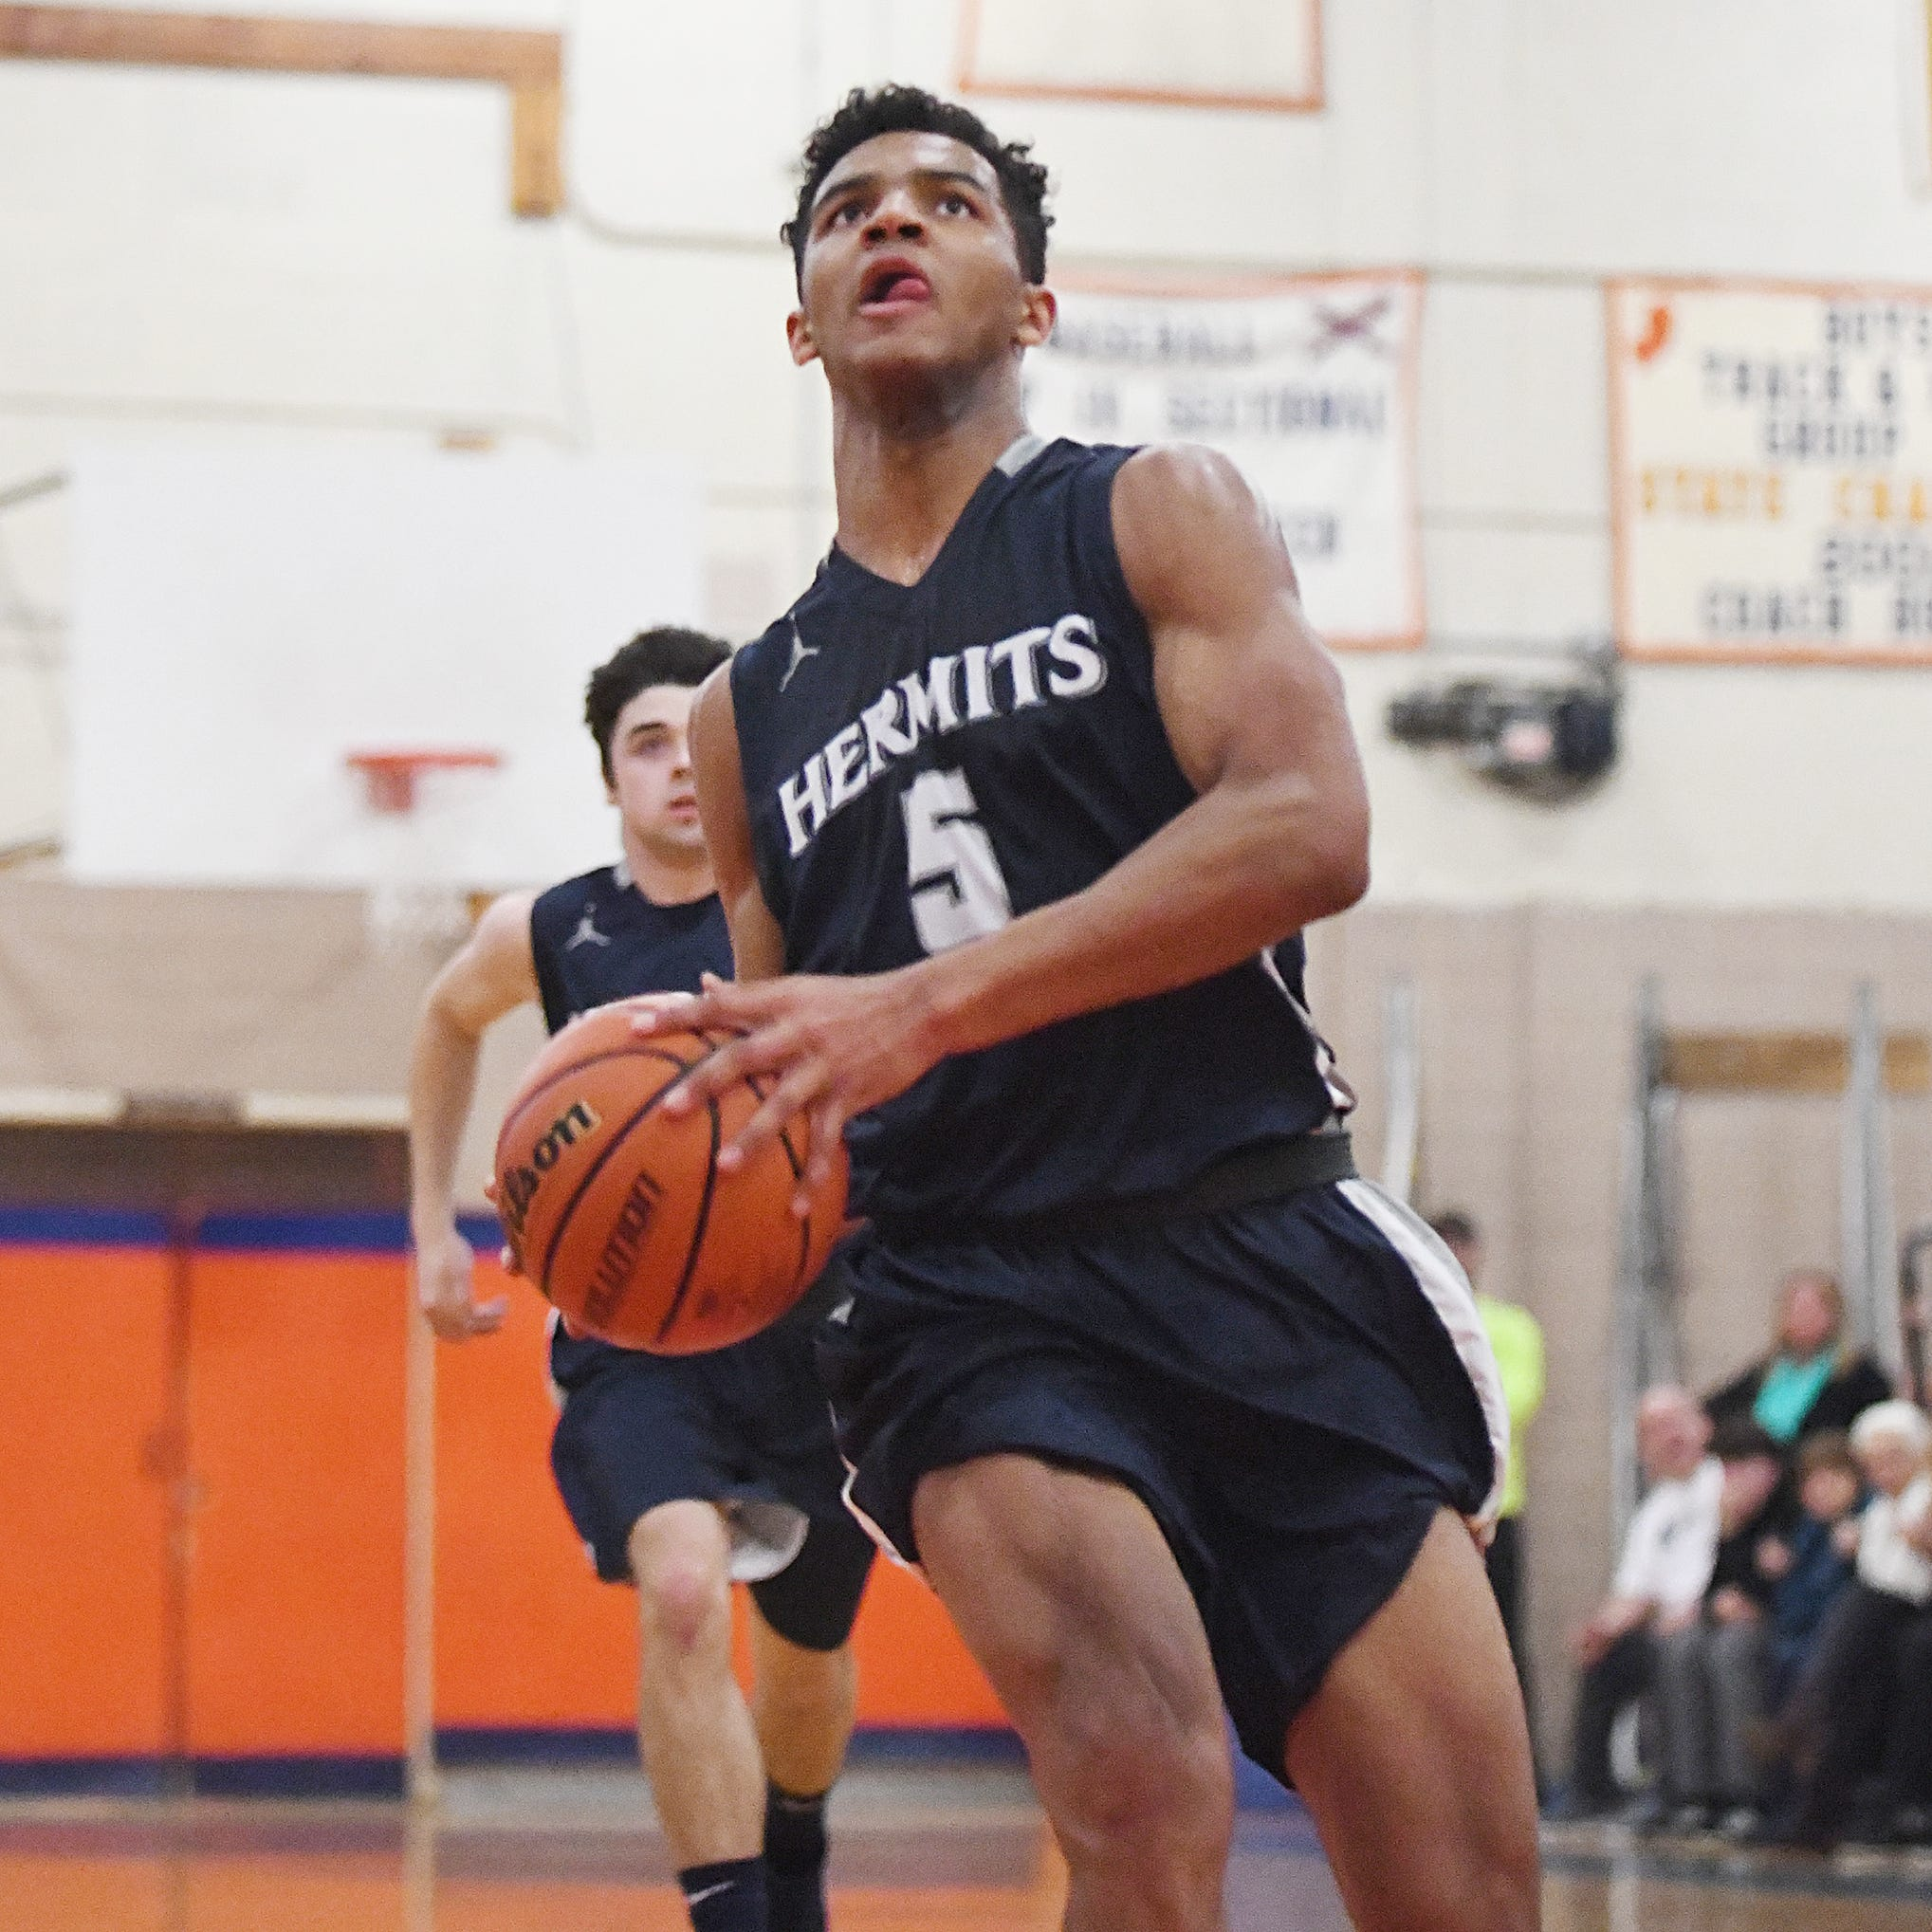 St. Augustine's Charles Solomon scores during a game against Millville. The Hermits topped the Thunderbolts 66-53 on Friday, Jan. 18, 2019.